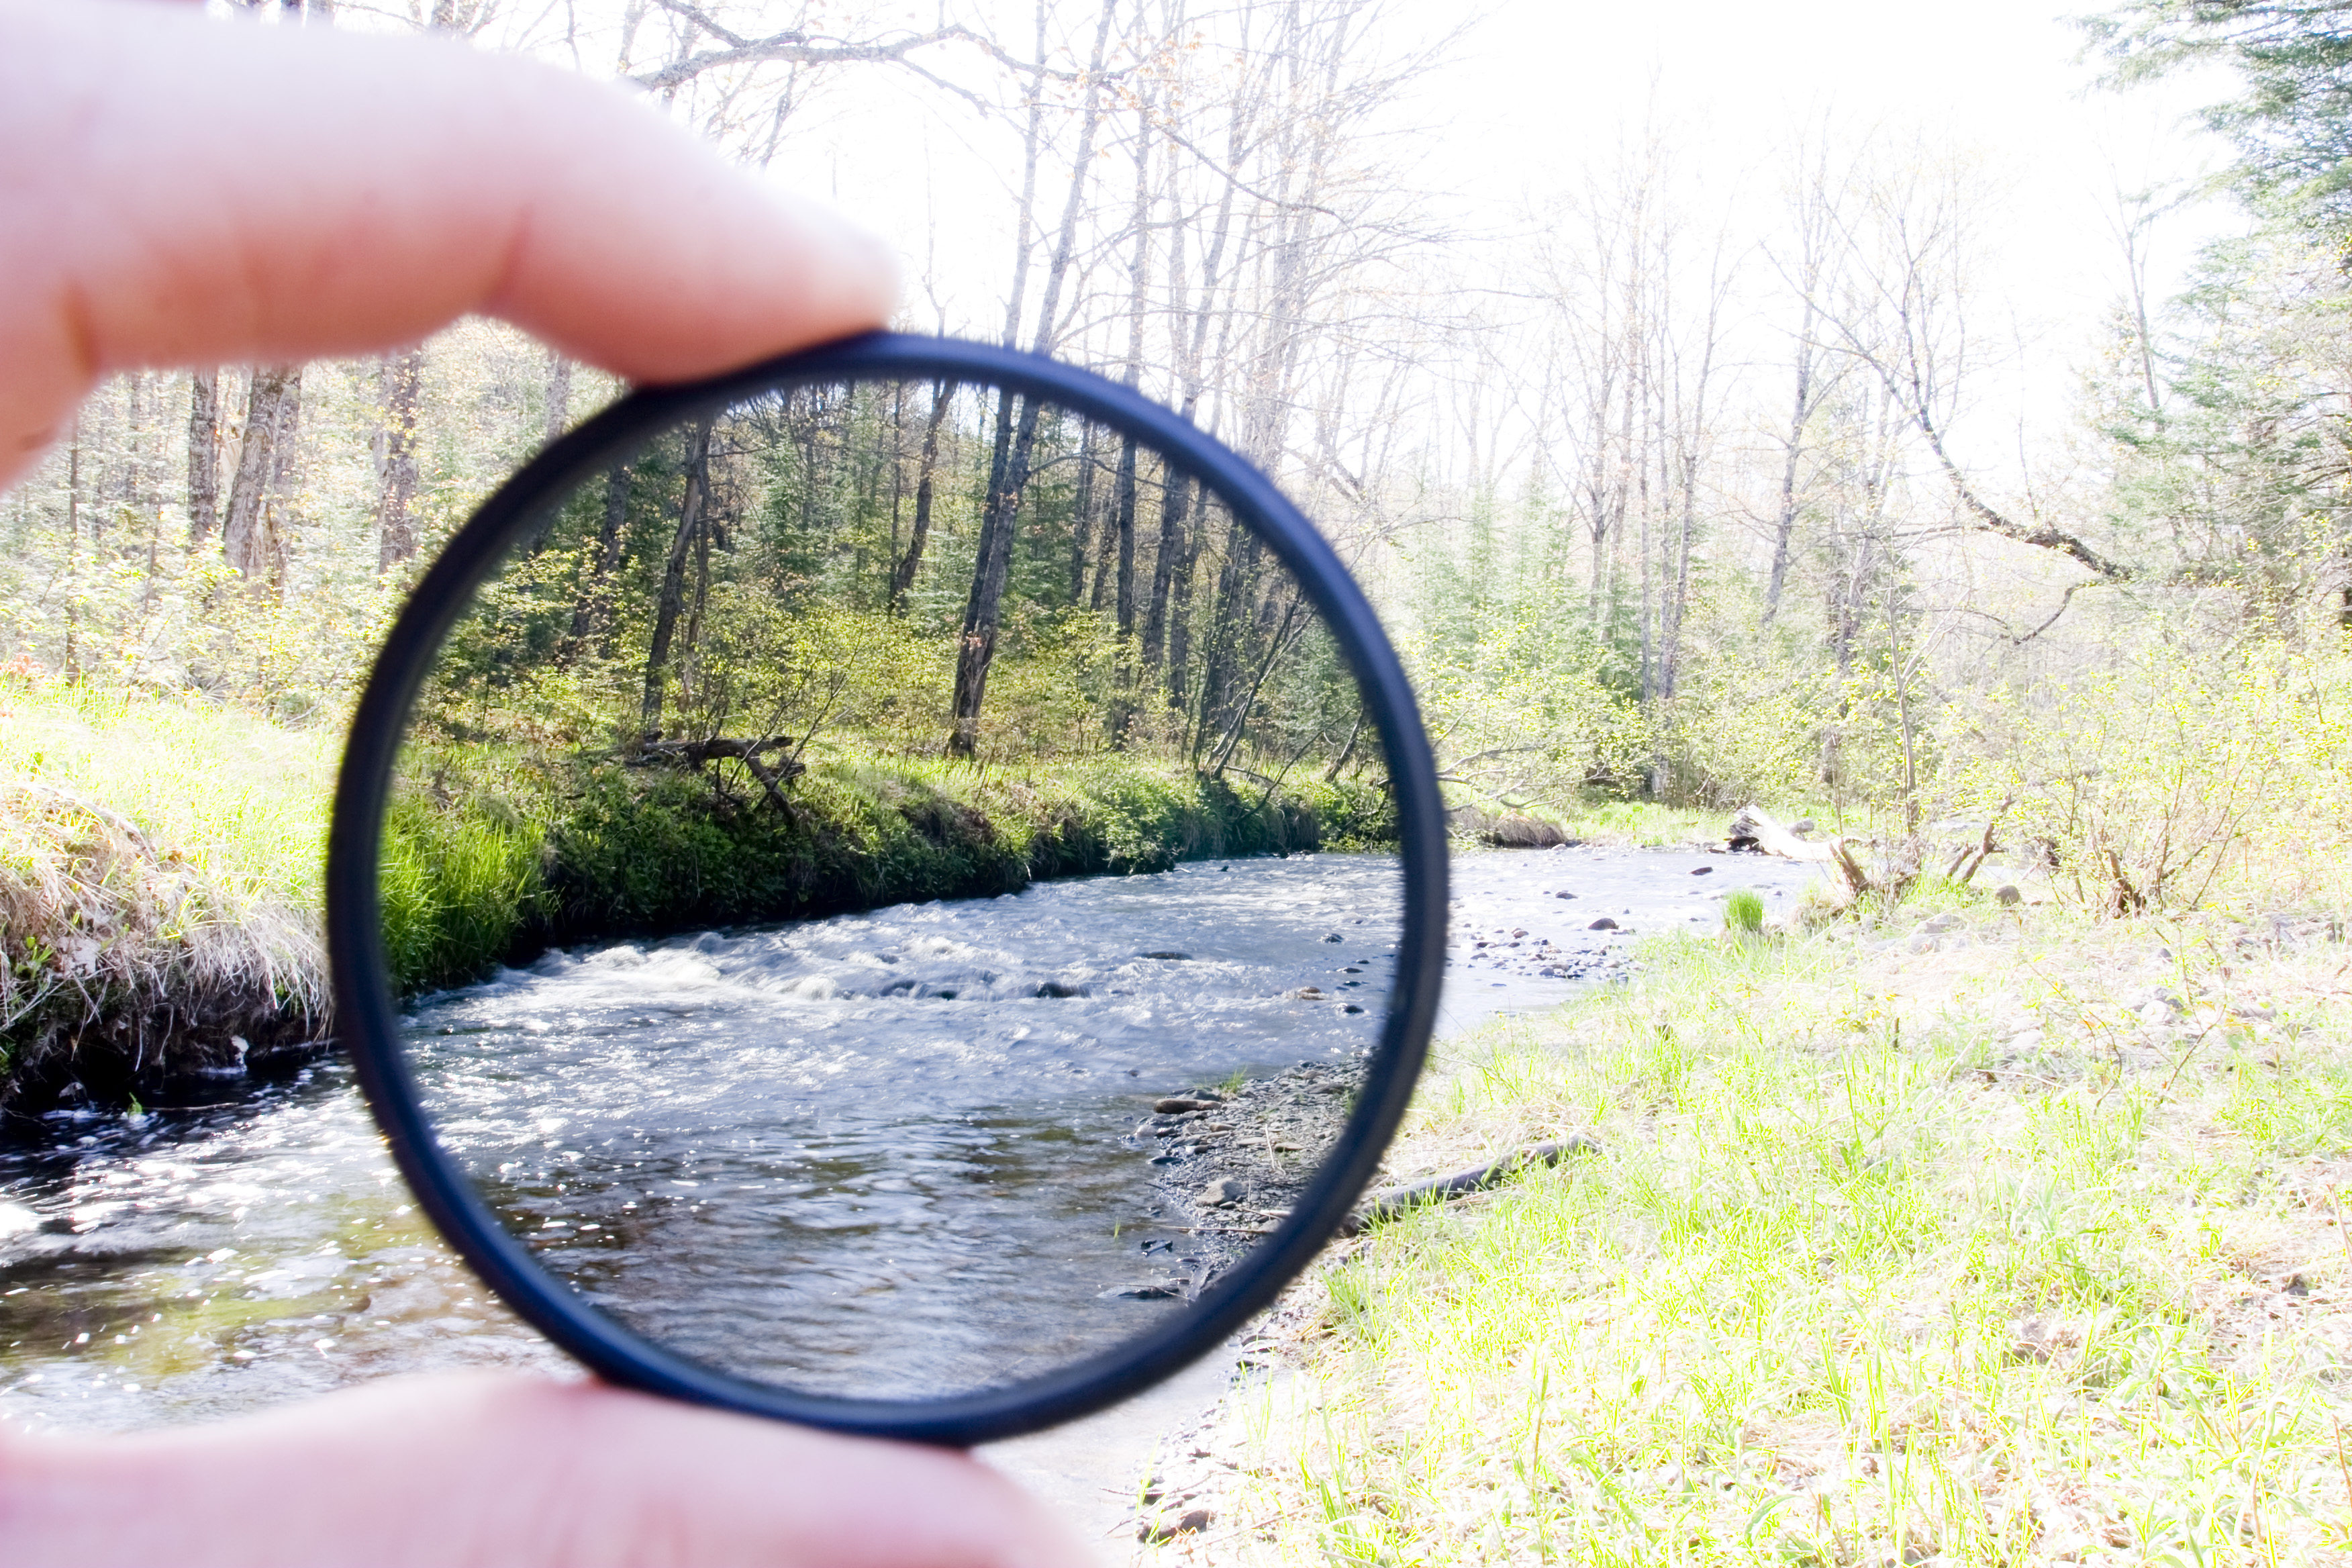 Neutral Density Filters Explained – When and How to Use ND Filters with Your Drone Camera